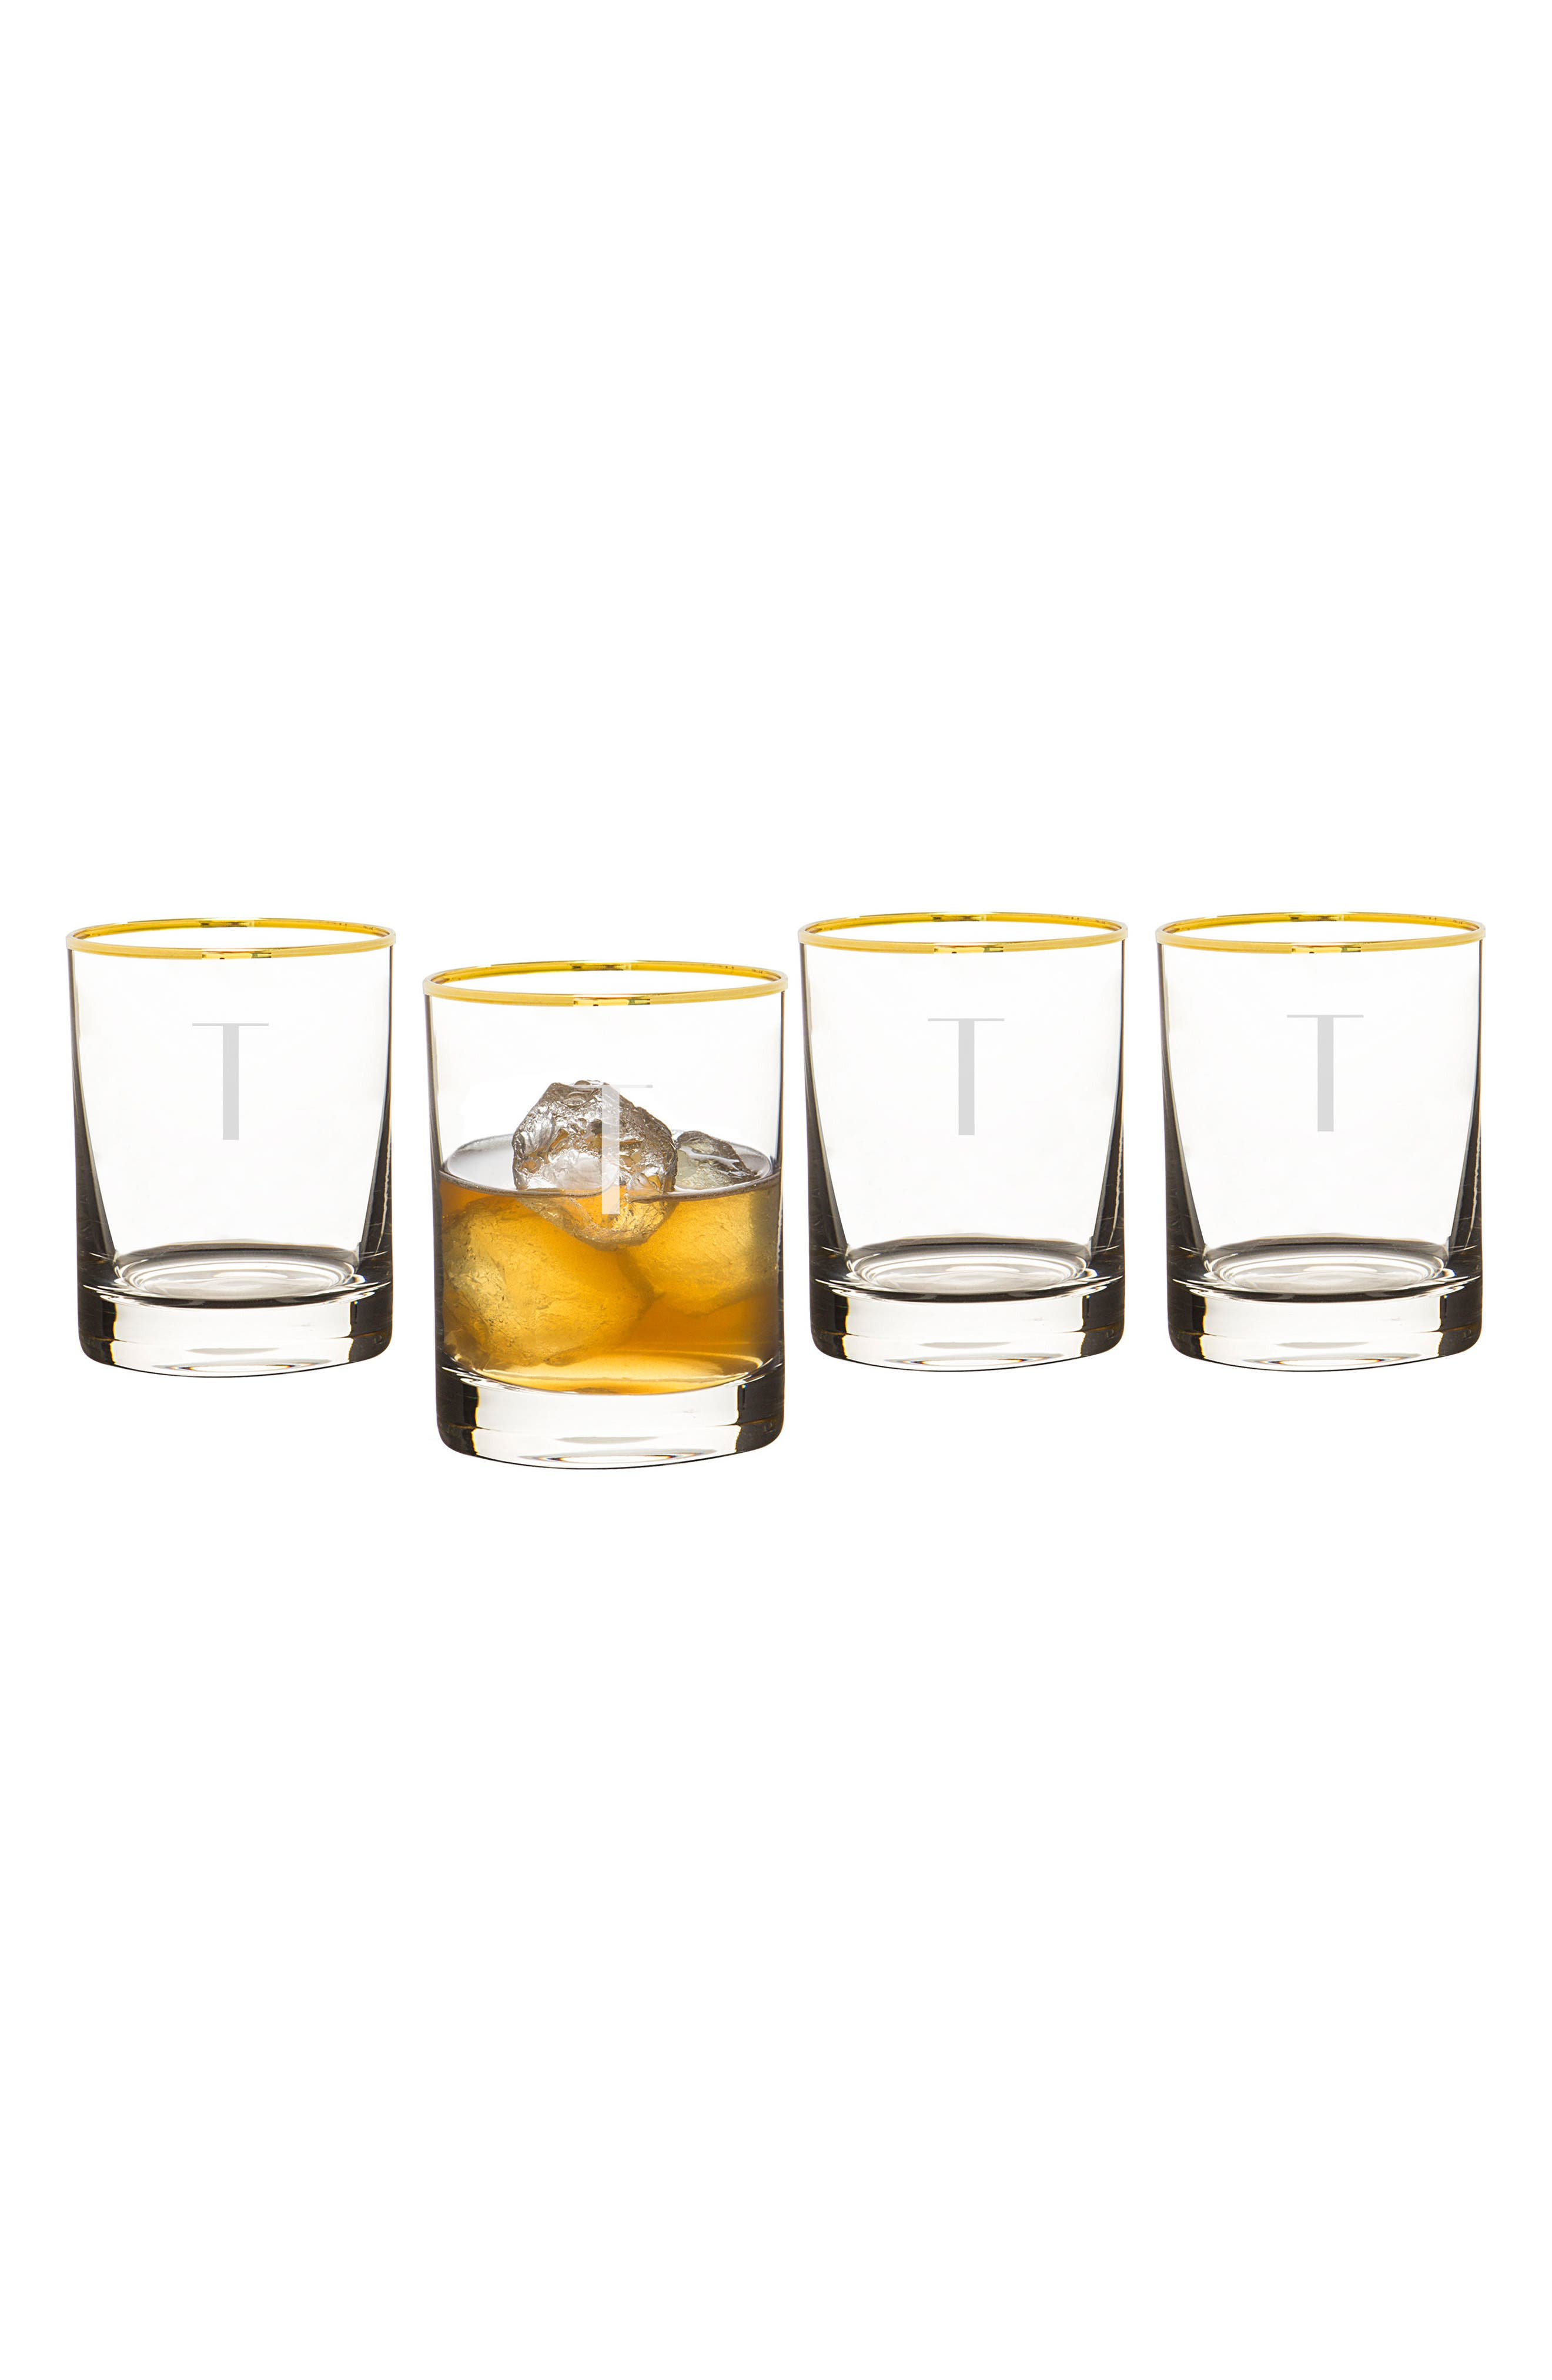 Monogram Set of 4 Double Old Fashioned Glasses,                             Main thumbnail 20, color,